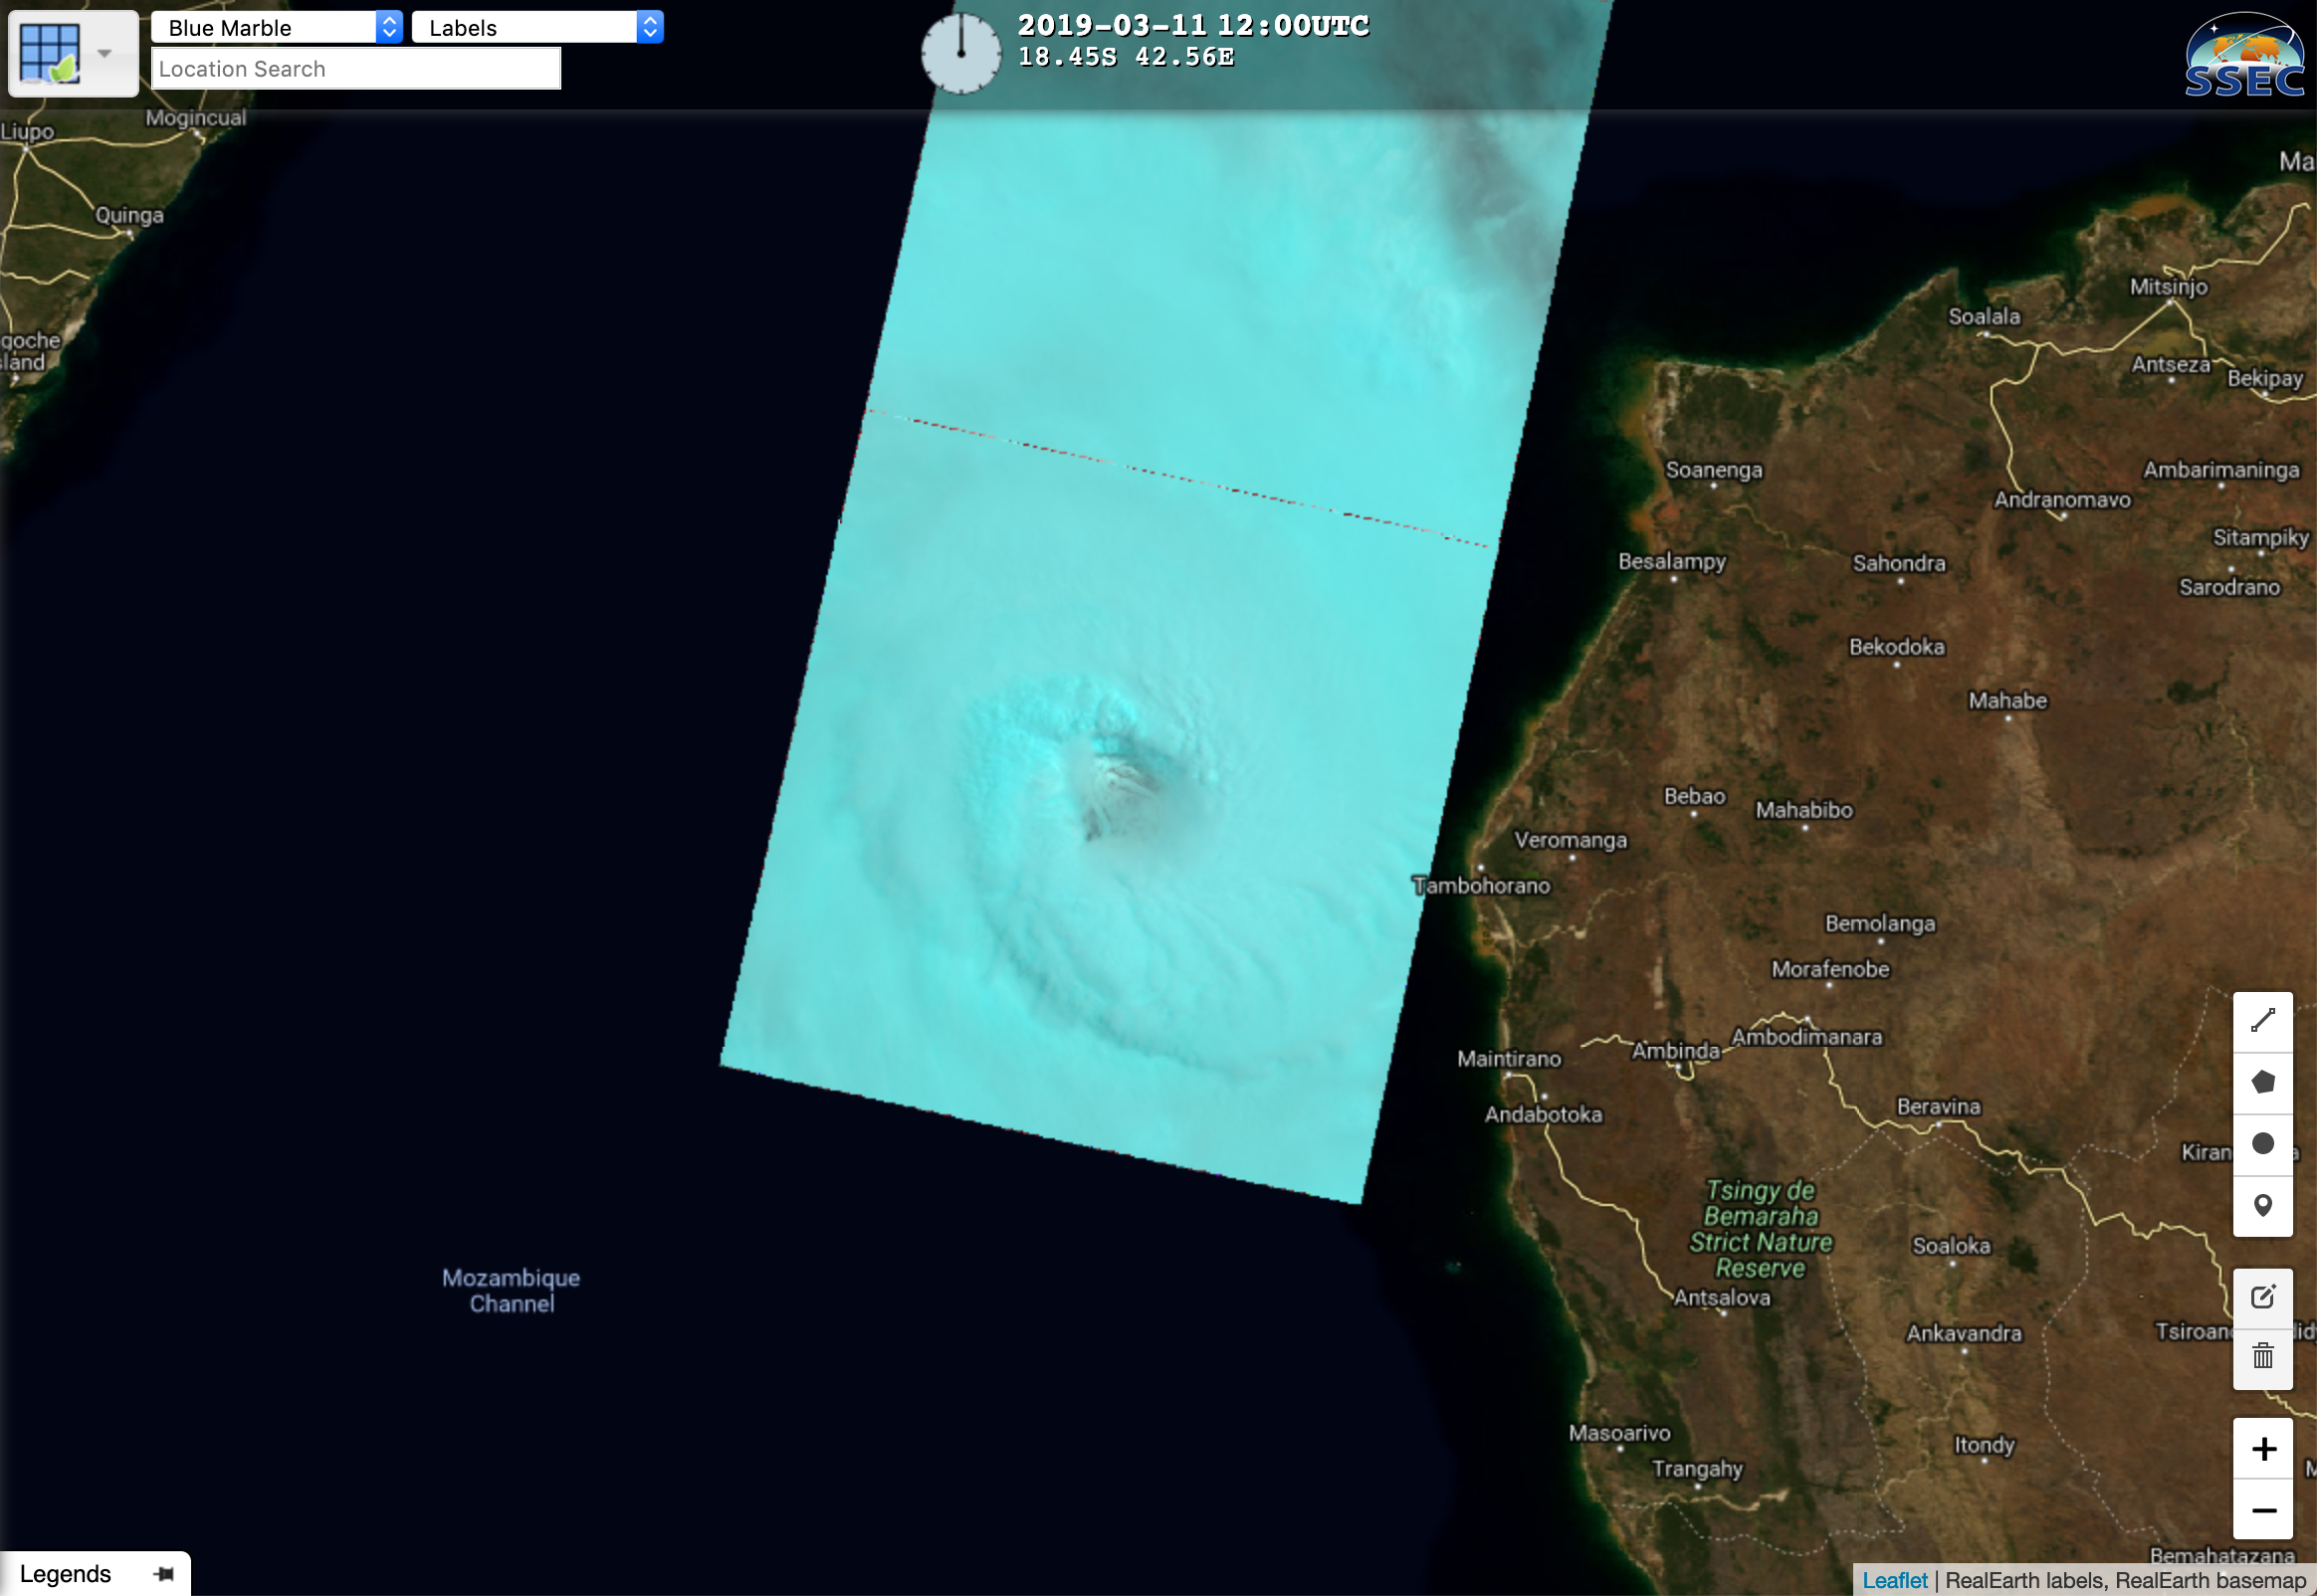 Landsat-8 False Color image of the eye of Idai on 11 March [click to play a zooming animation]